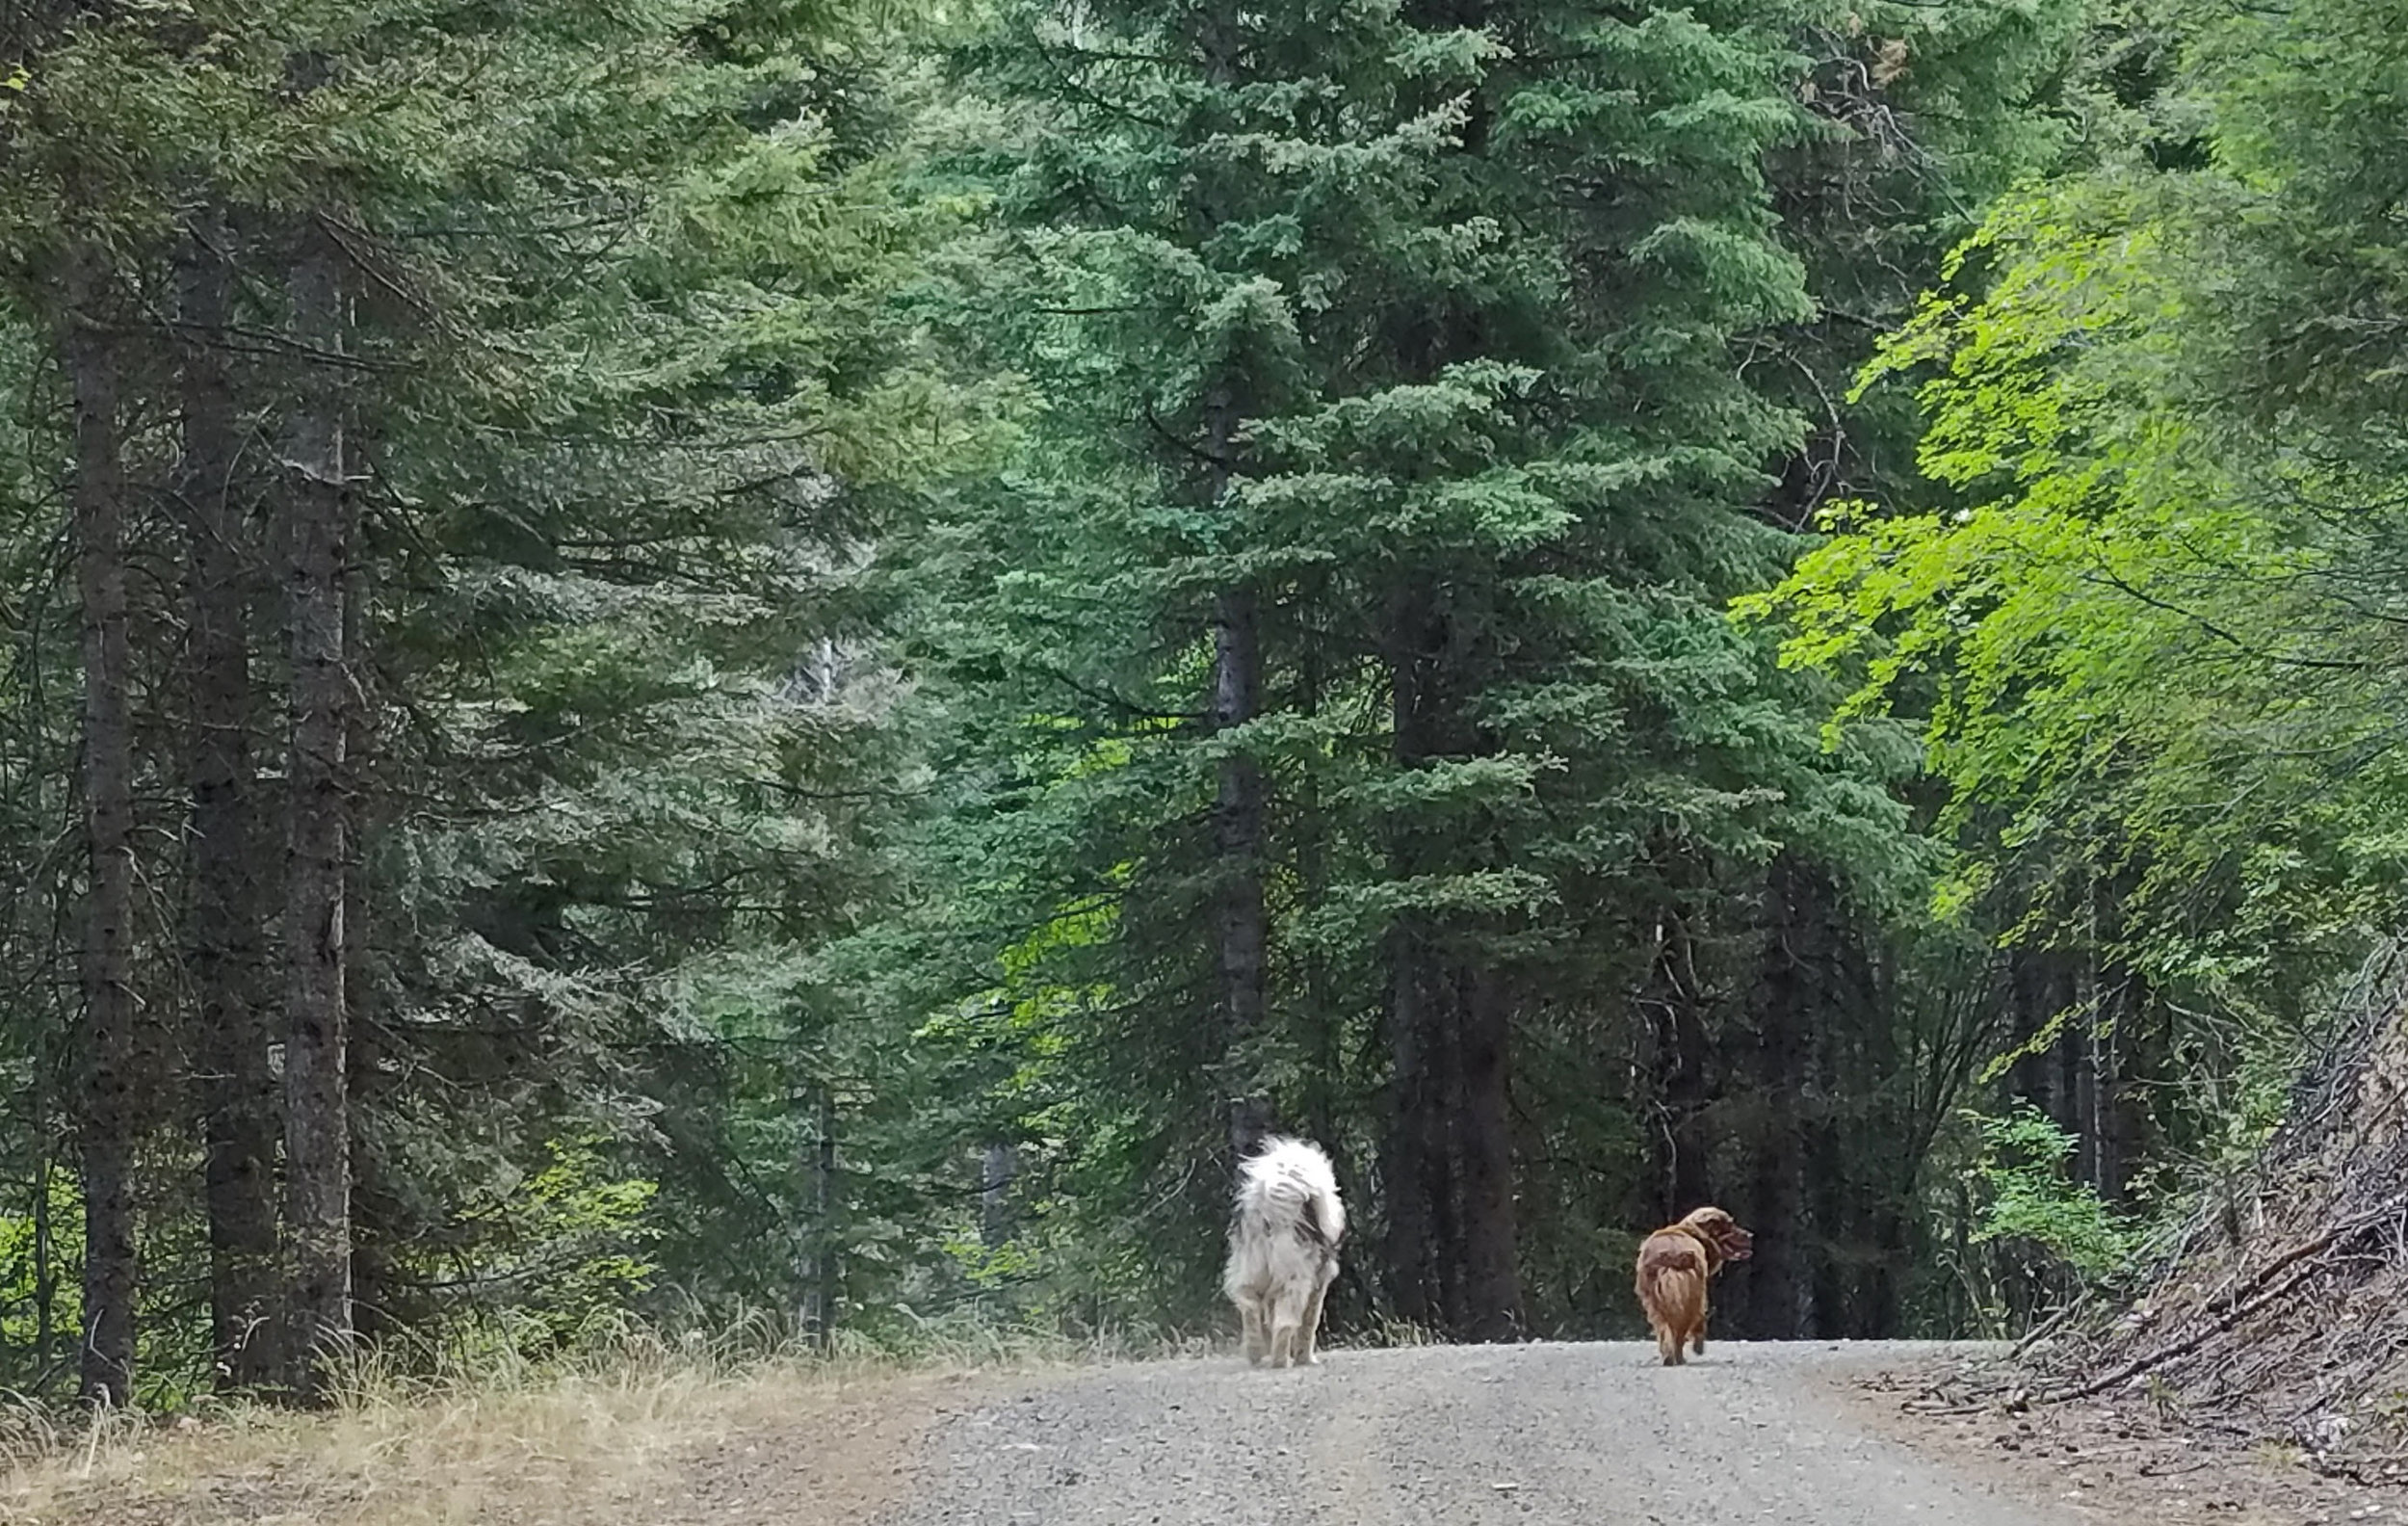 Heading into the forest.